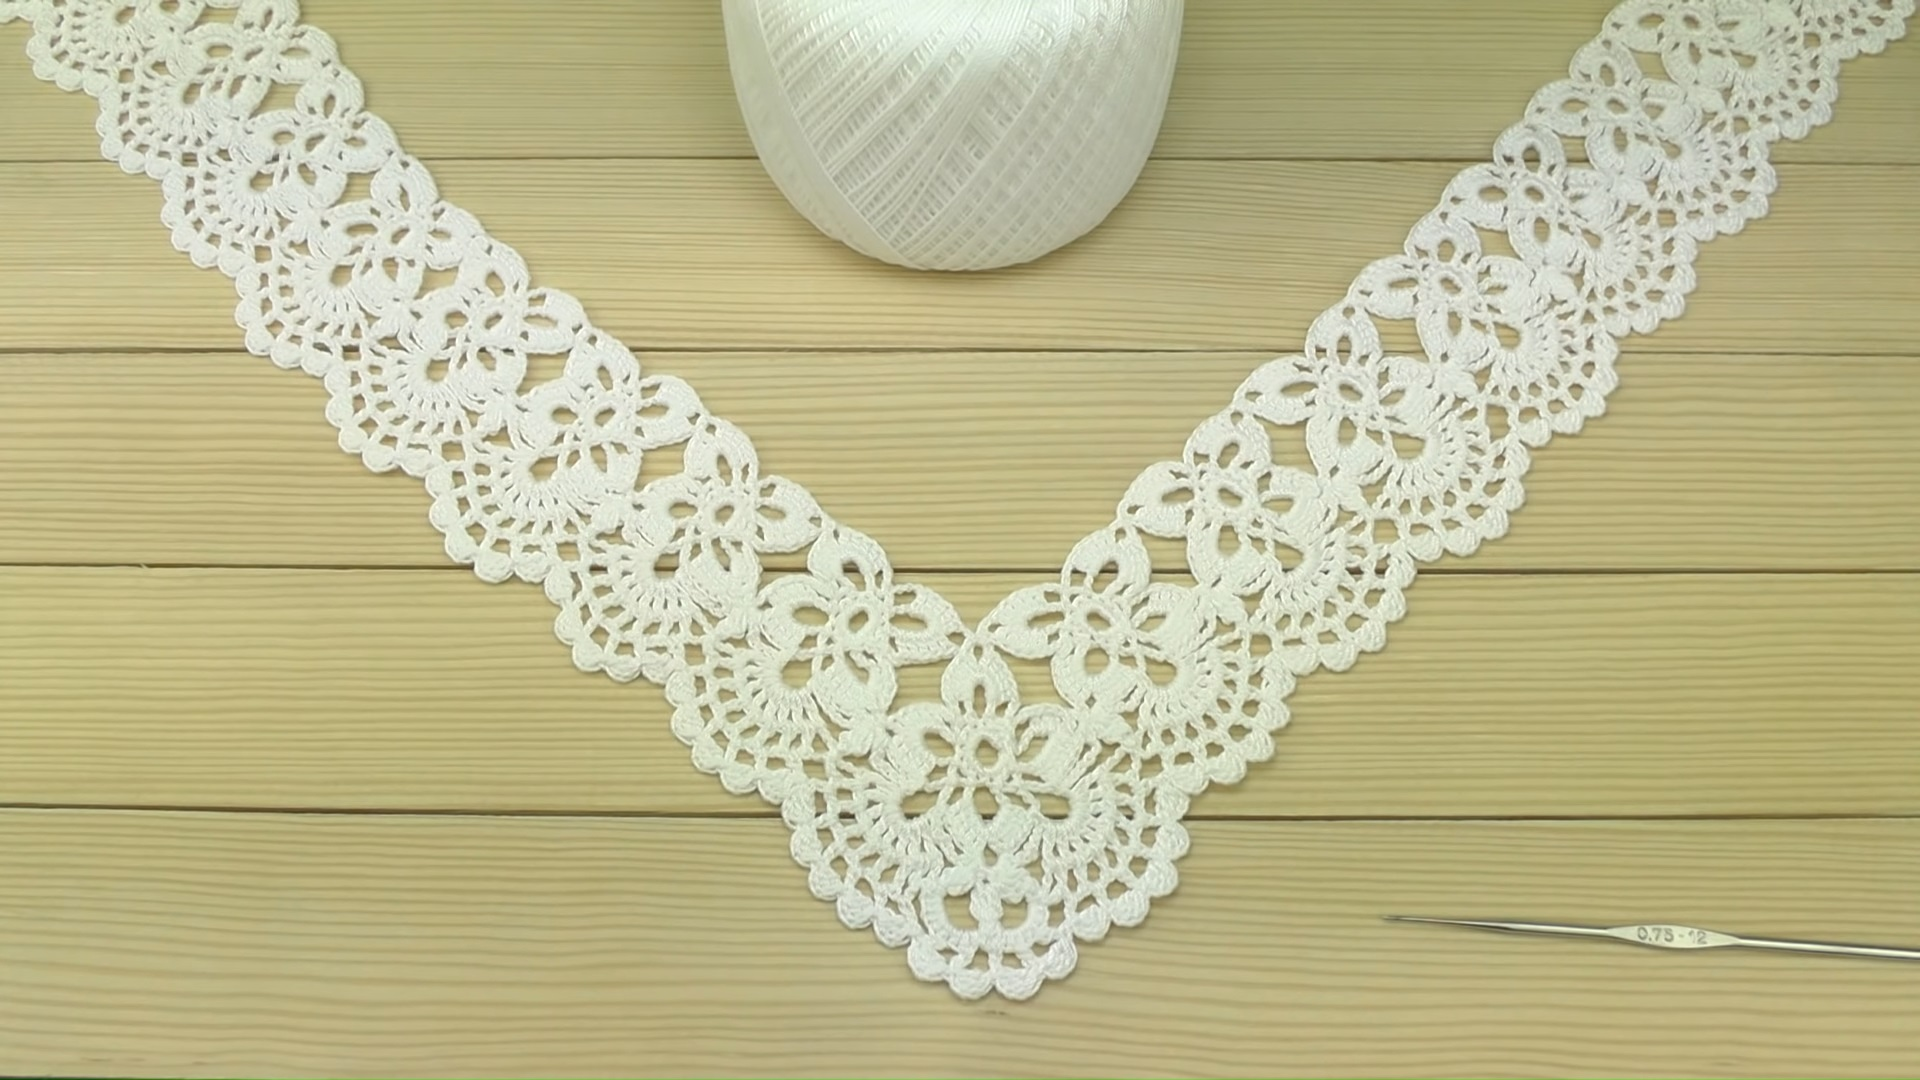 Crochet Border for Doily Tablecloth pattern